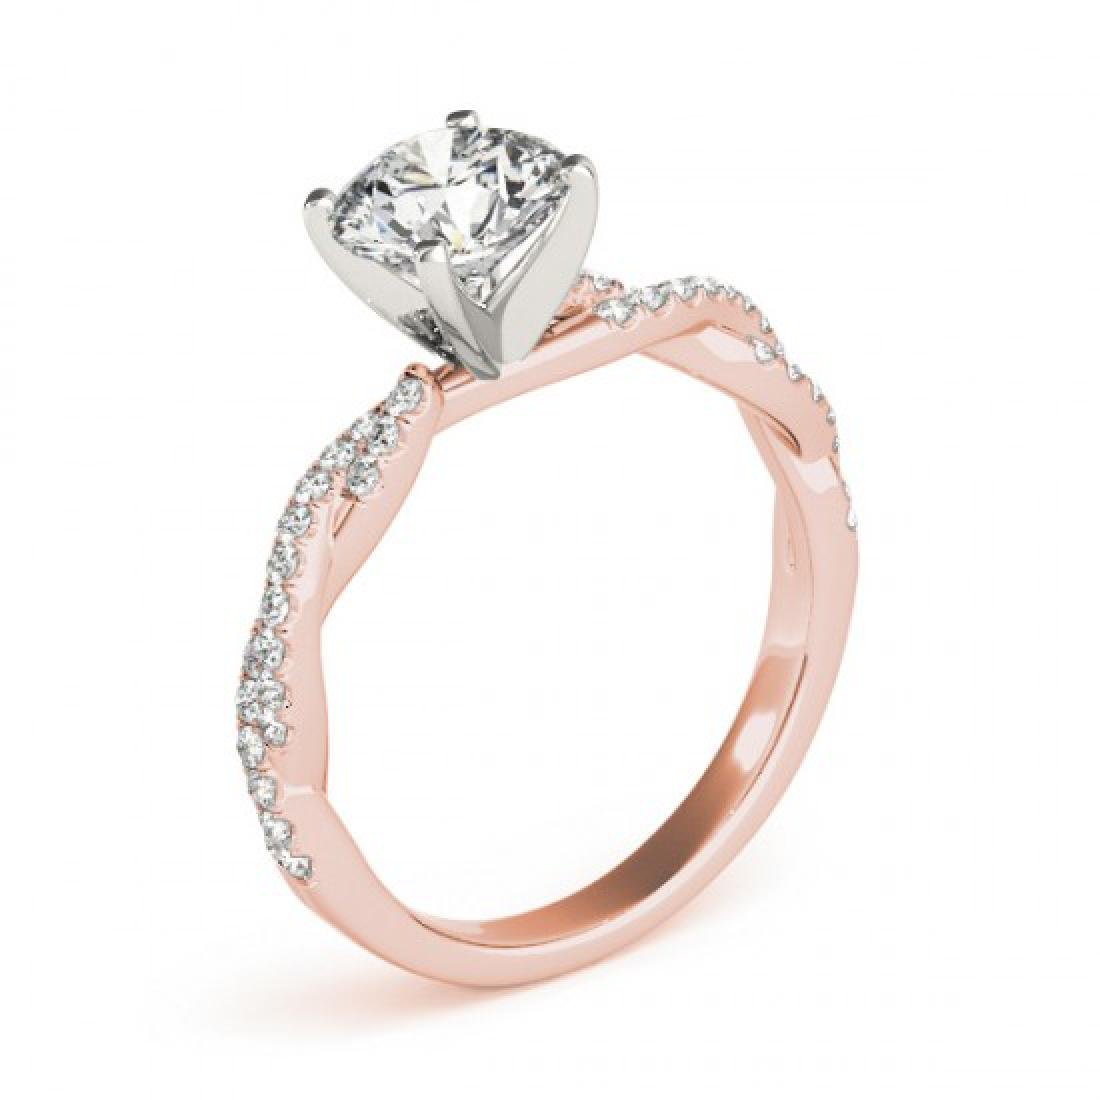 1.25 CTW Certified VS/SI Diamond Solitaire Ring 14K - 3